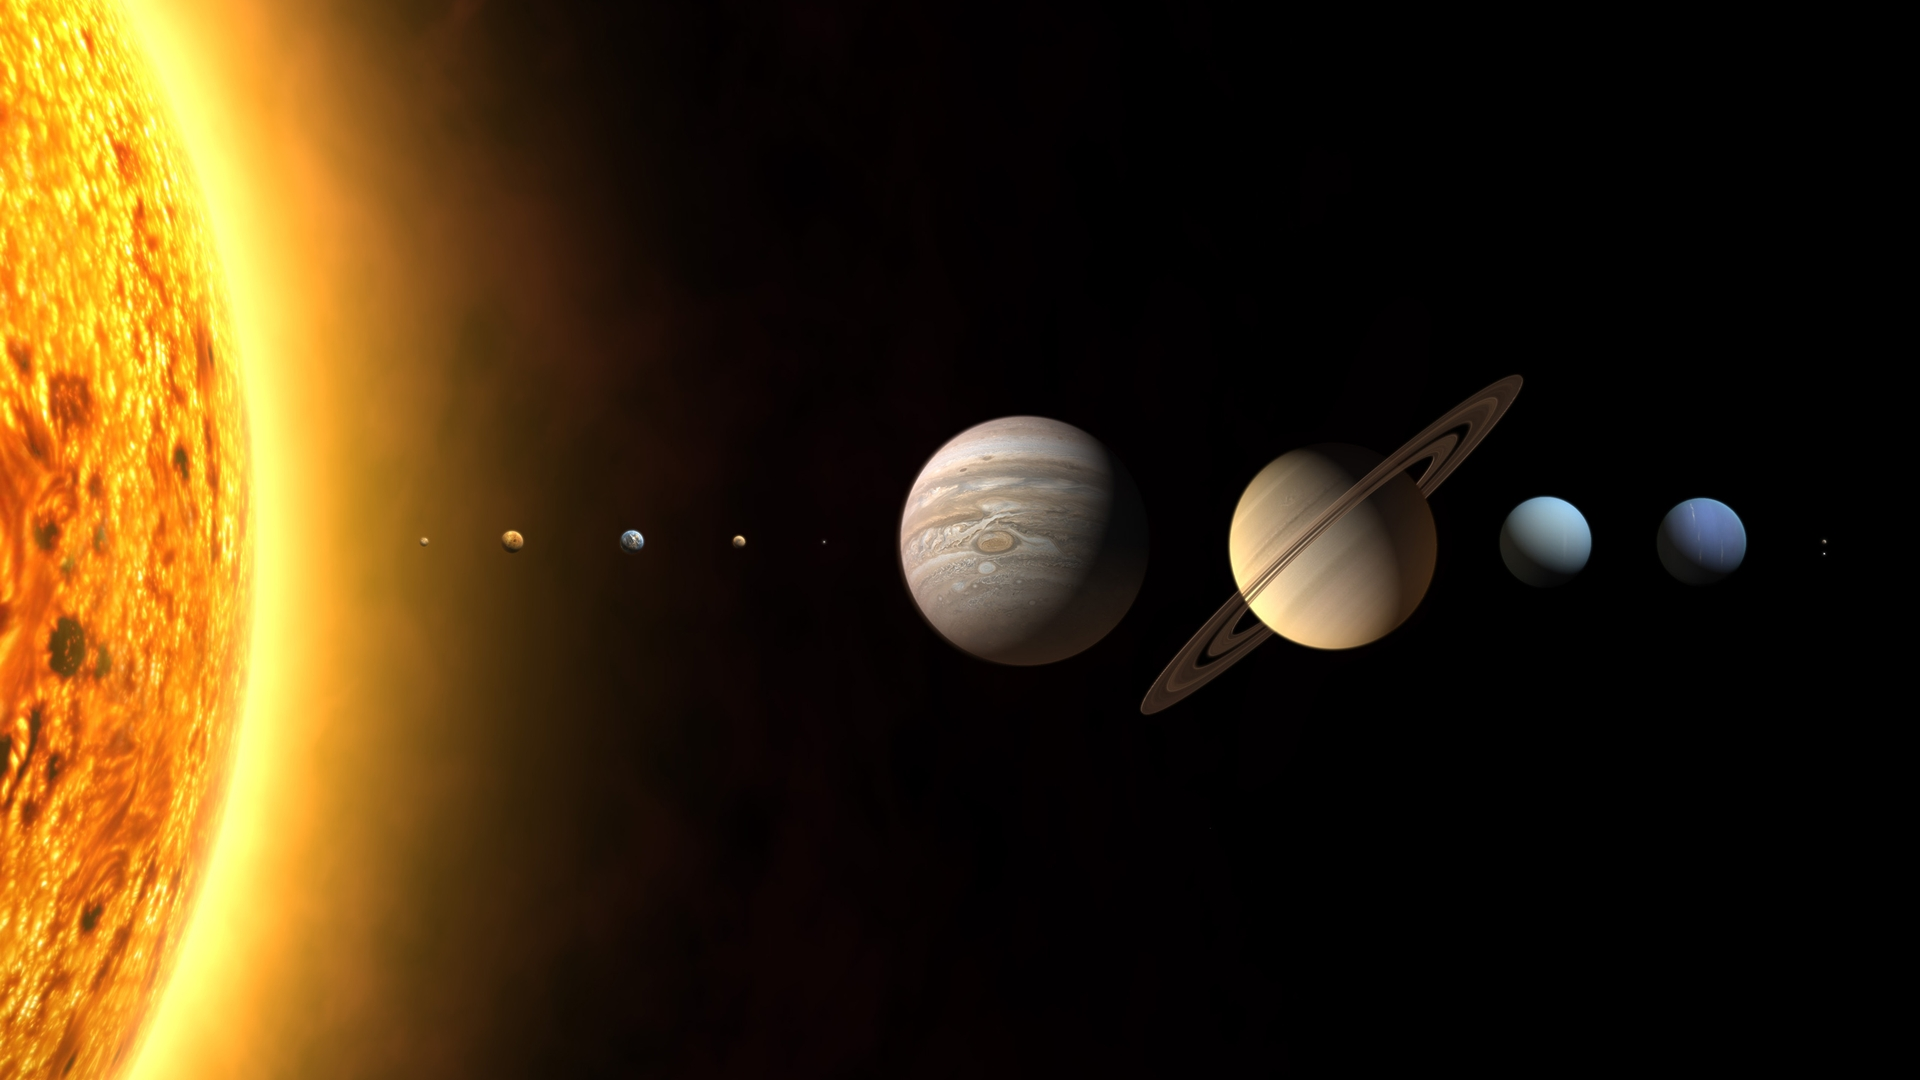 planets orbit time - HD 1920×1080